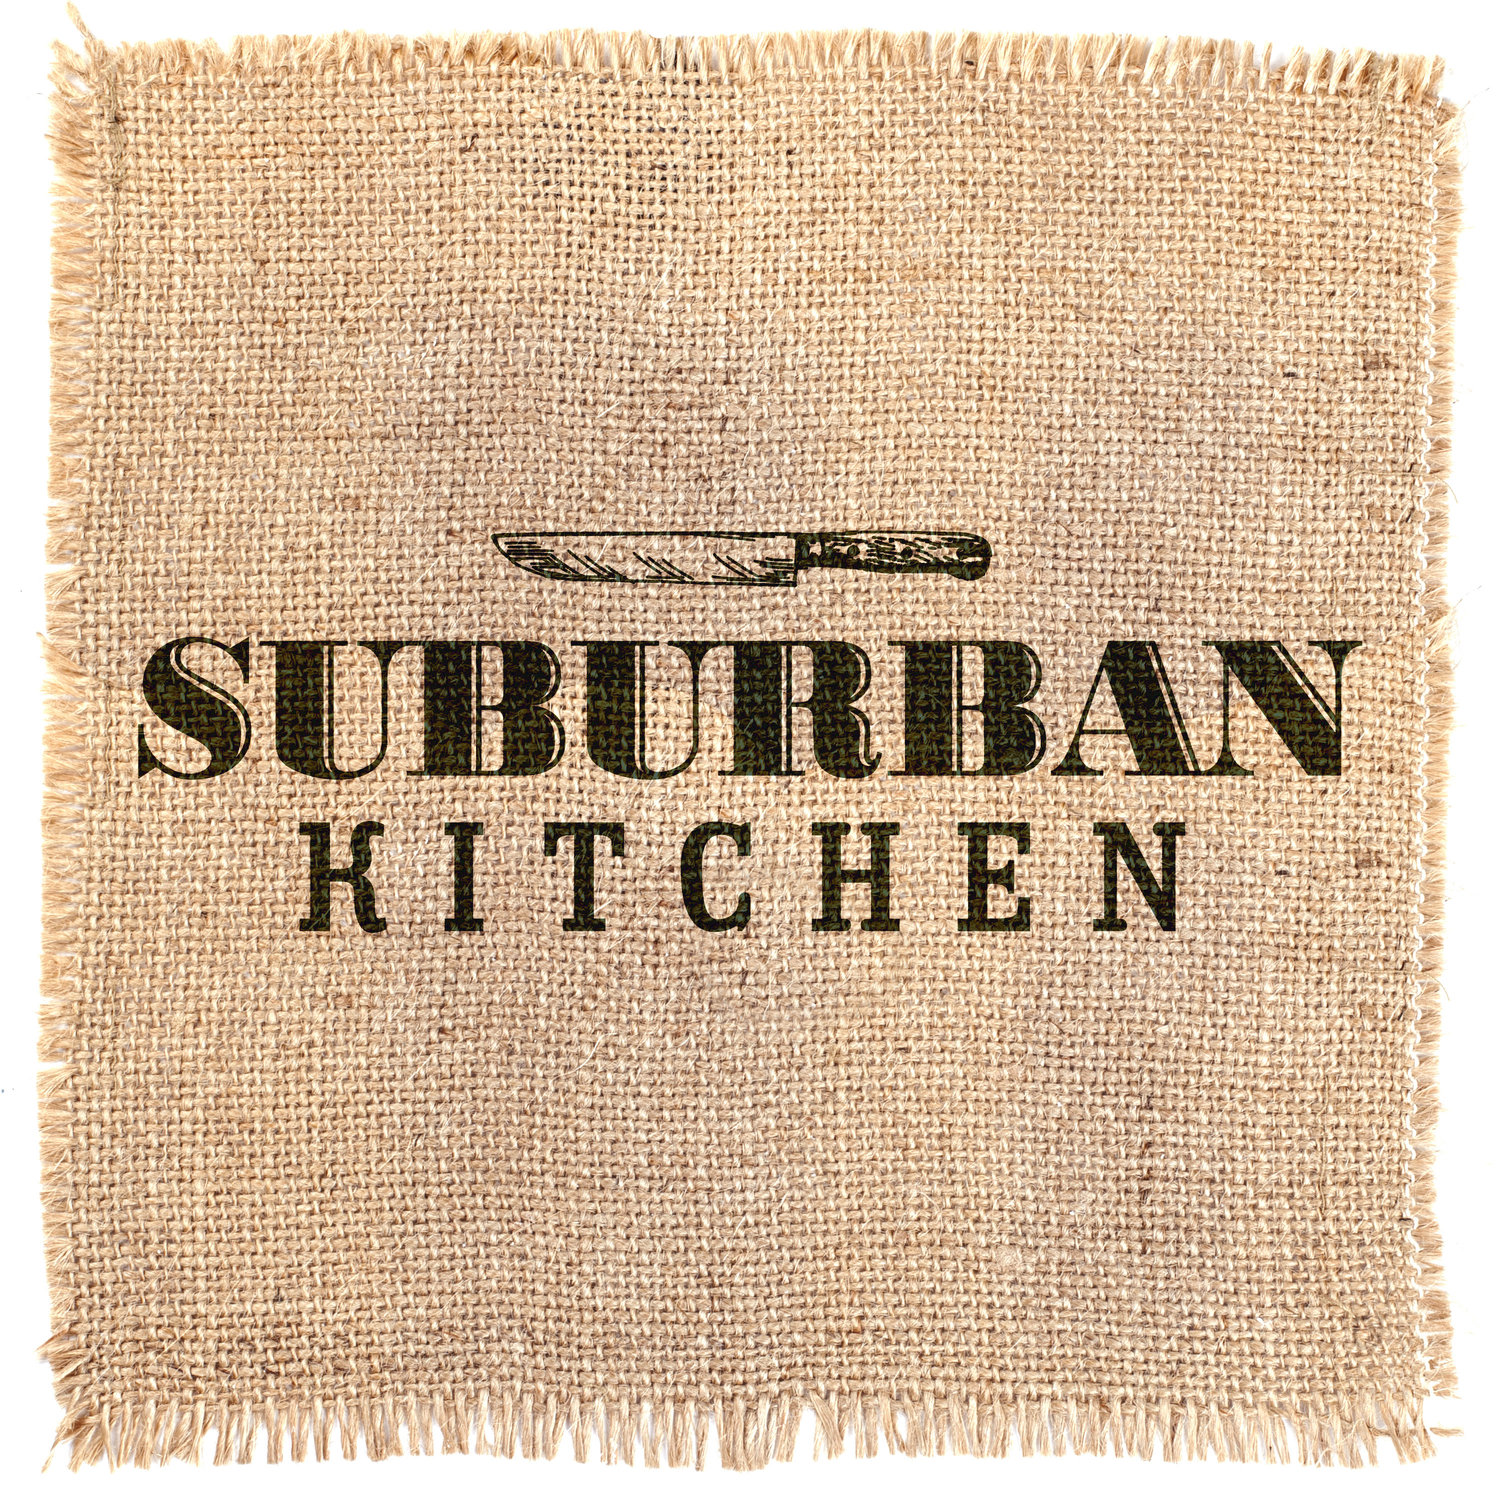 Suburban Kitchen | Private chef | Saratoga wedding catering